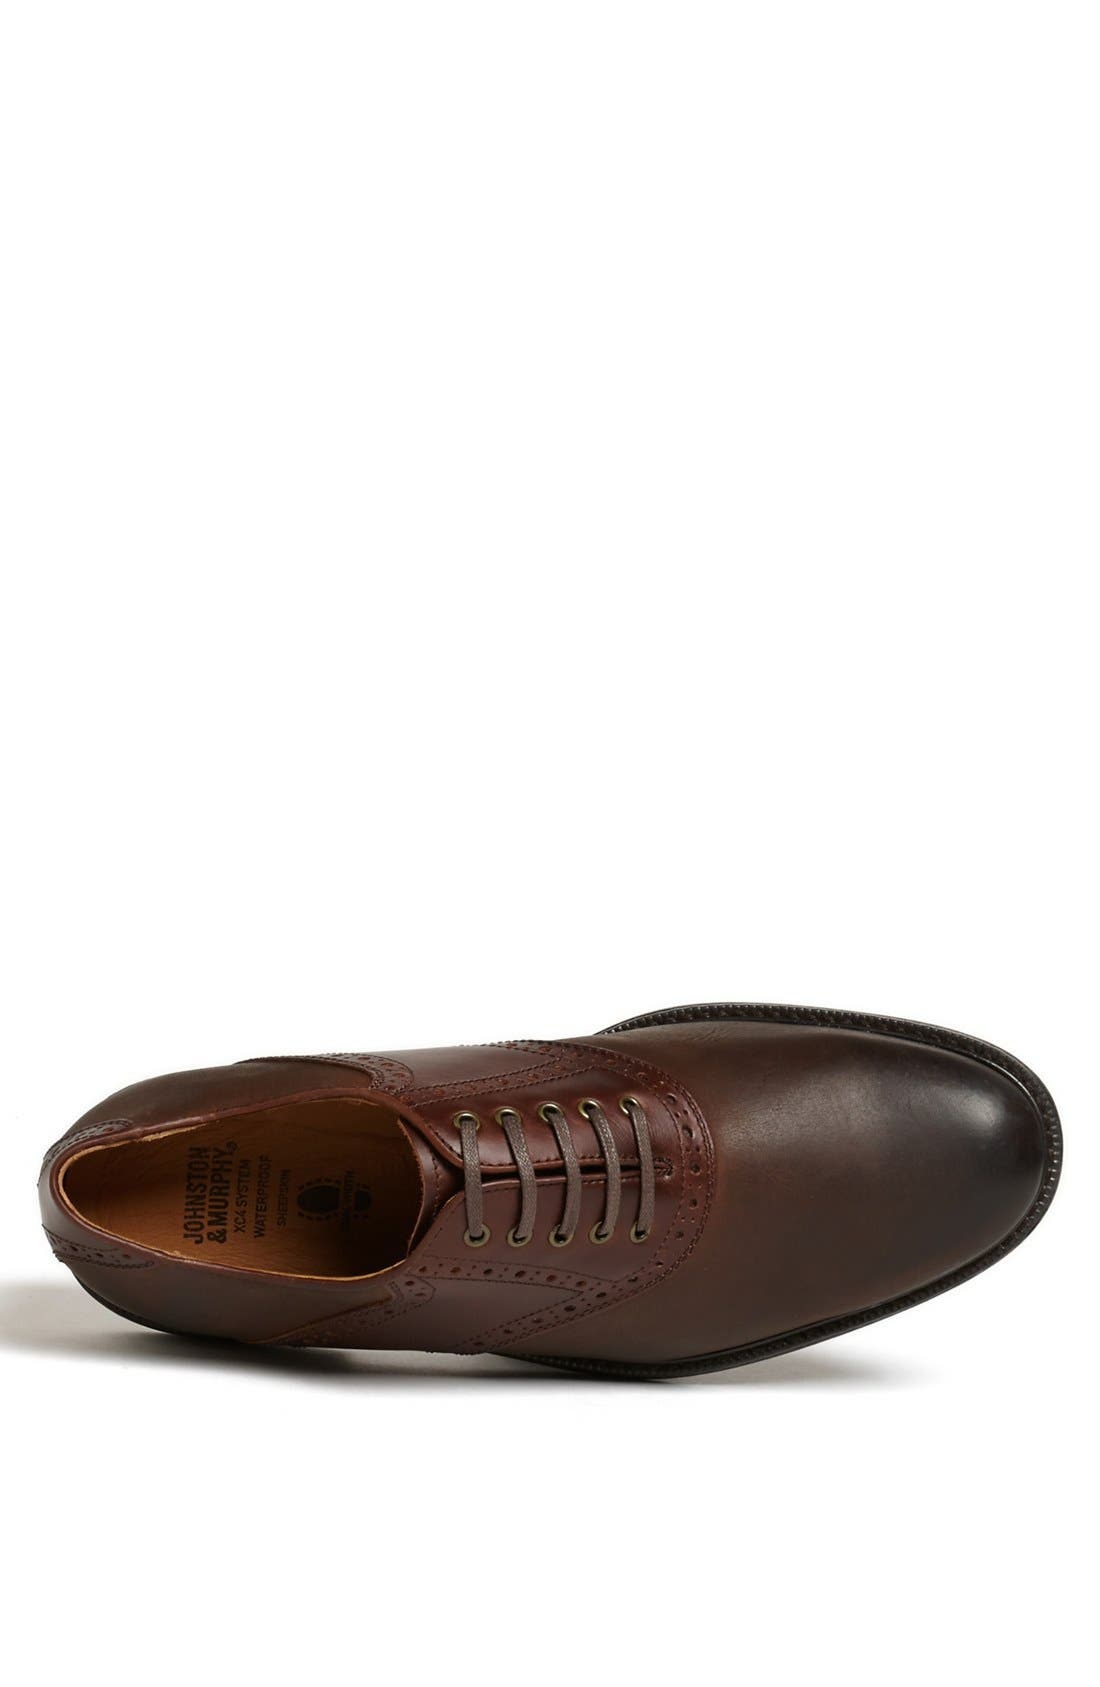 'Cardell' Waterproof Saddle Oxford,                             Alternate thumbnail 3, color,                             200